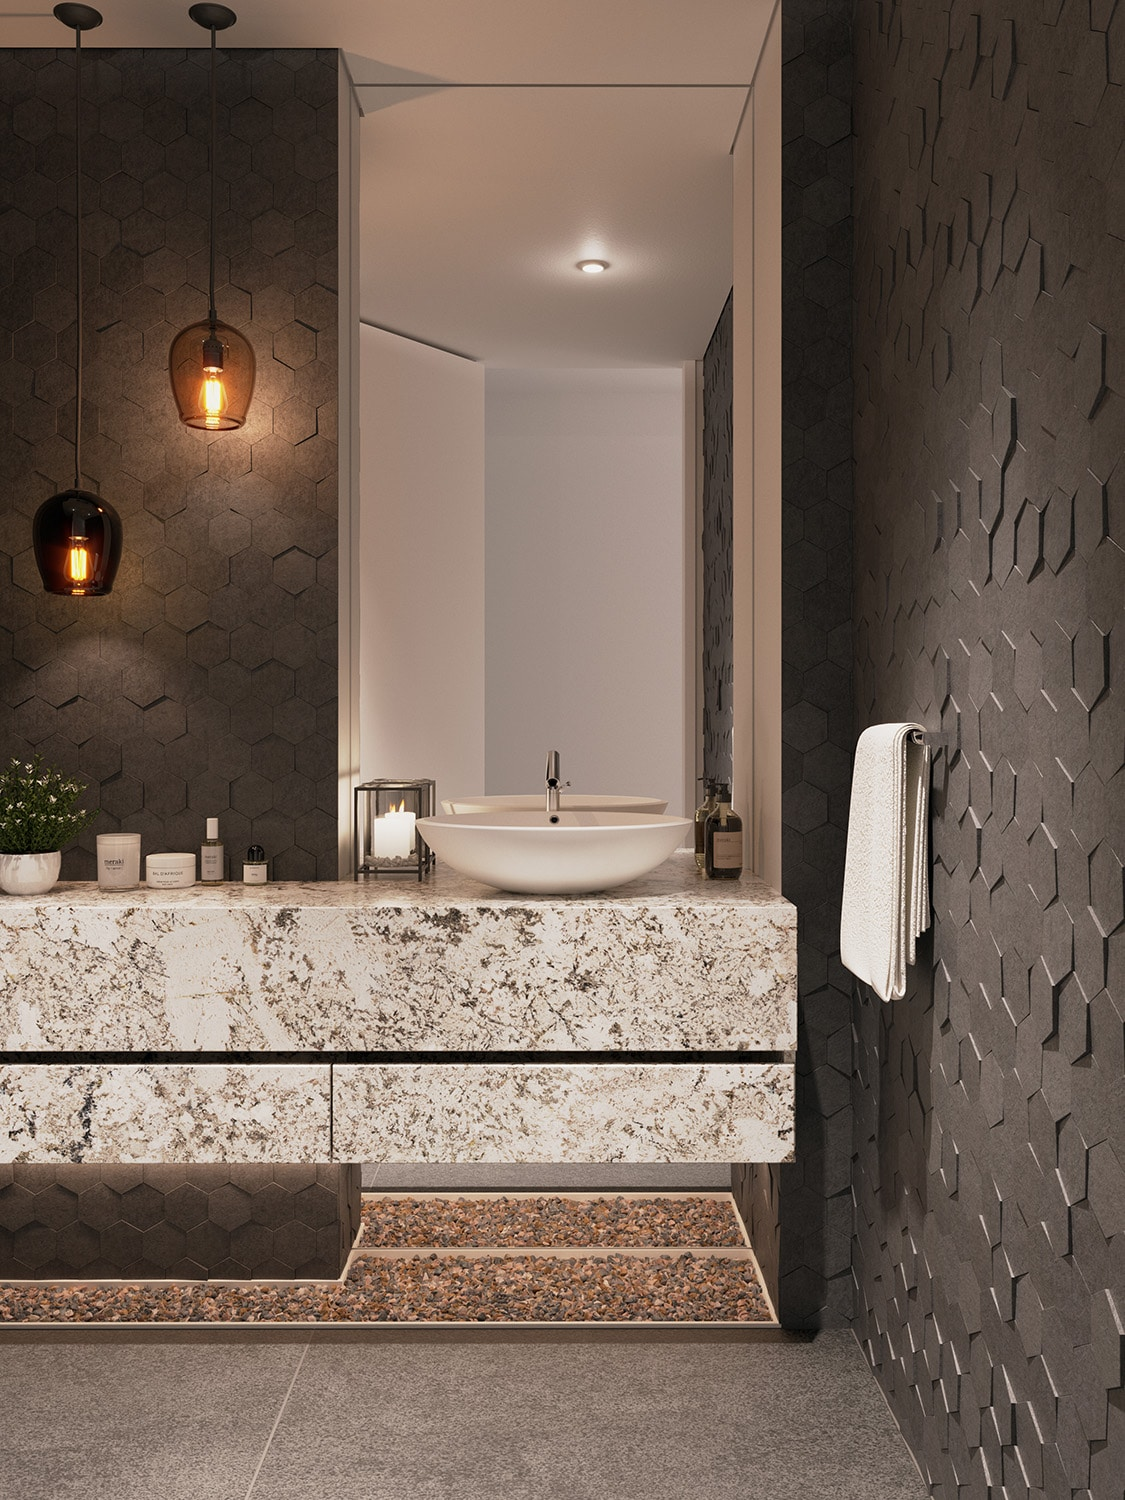 small-bathroom-resort-house-cgi-interior-cgi-francos-and-costa-architectural-visualisation-agency